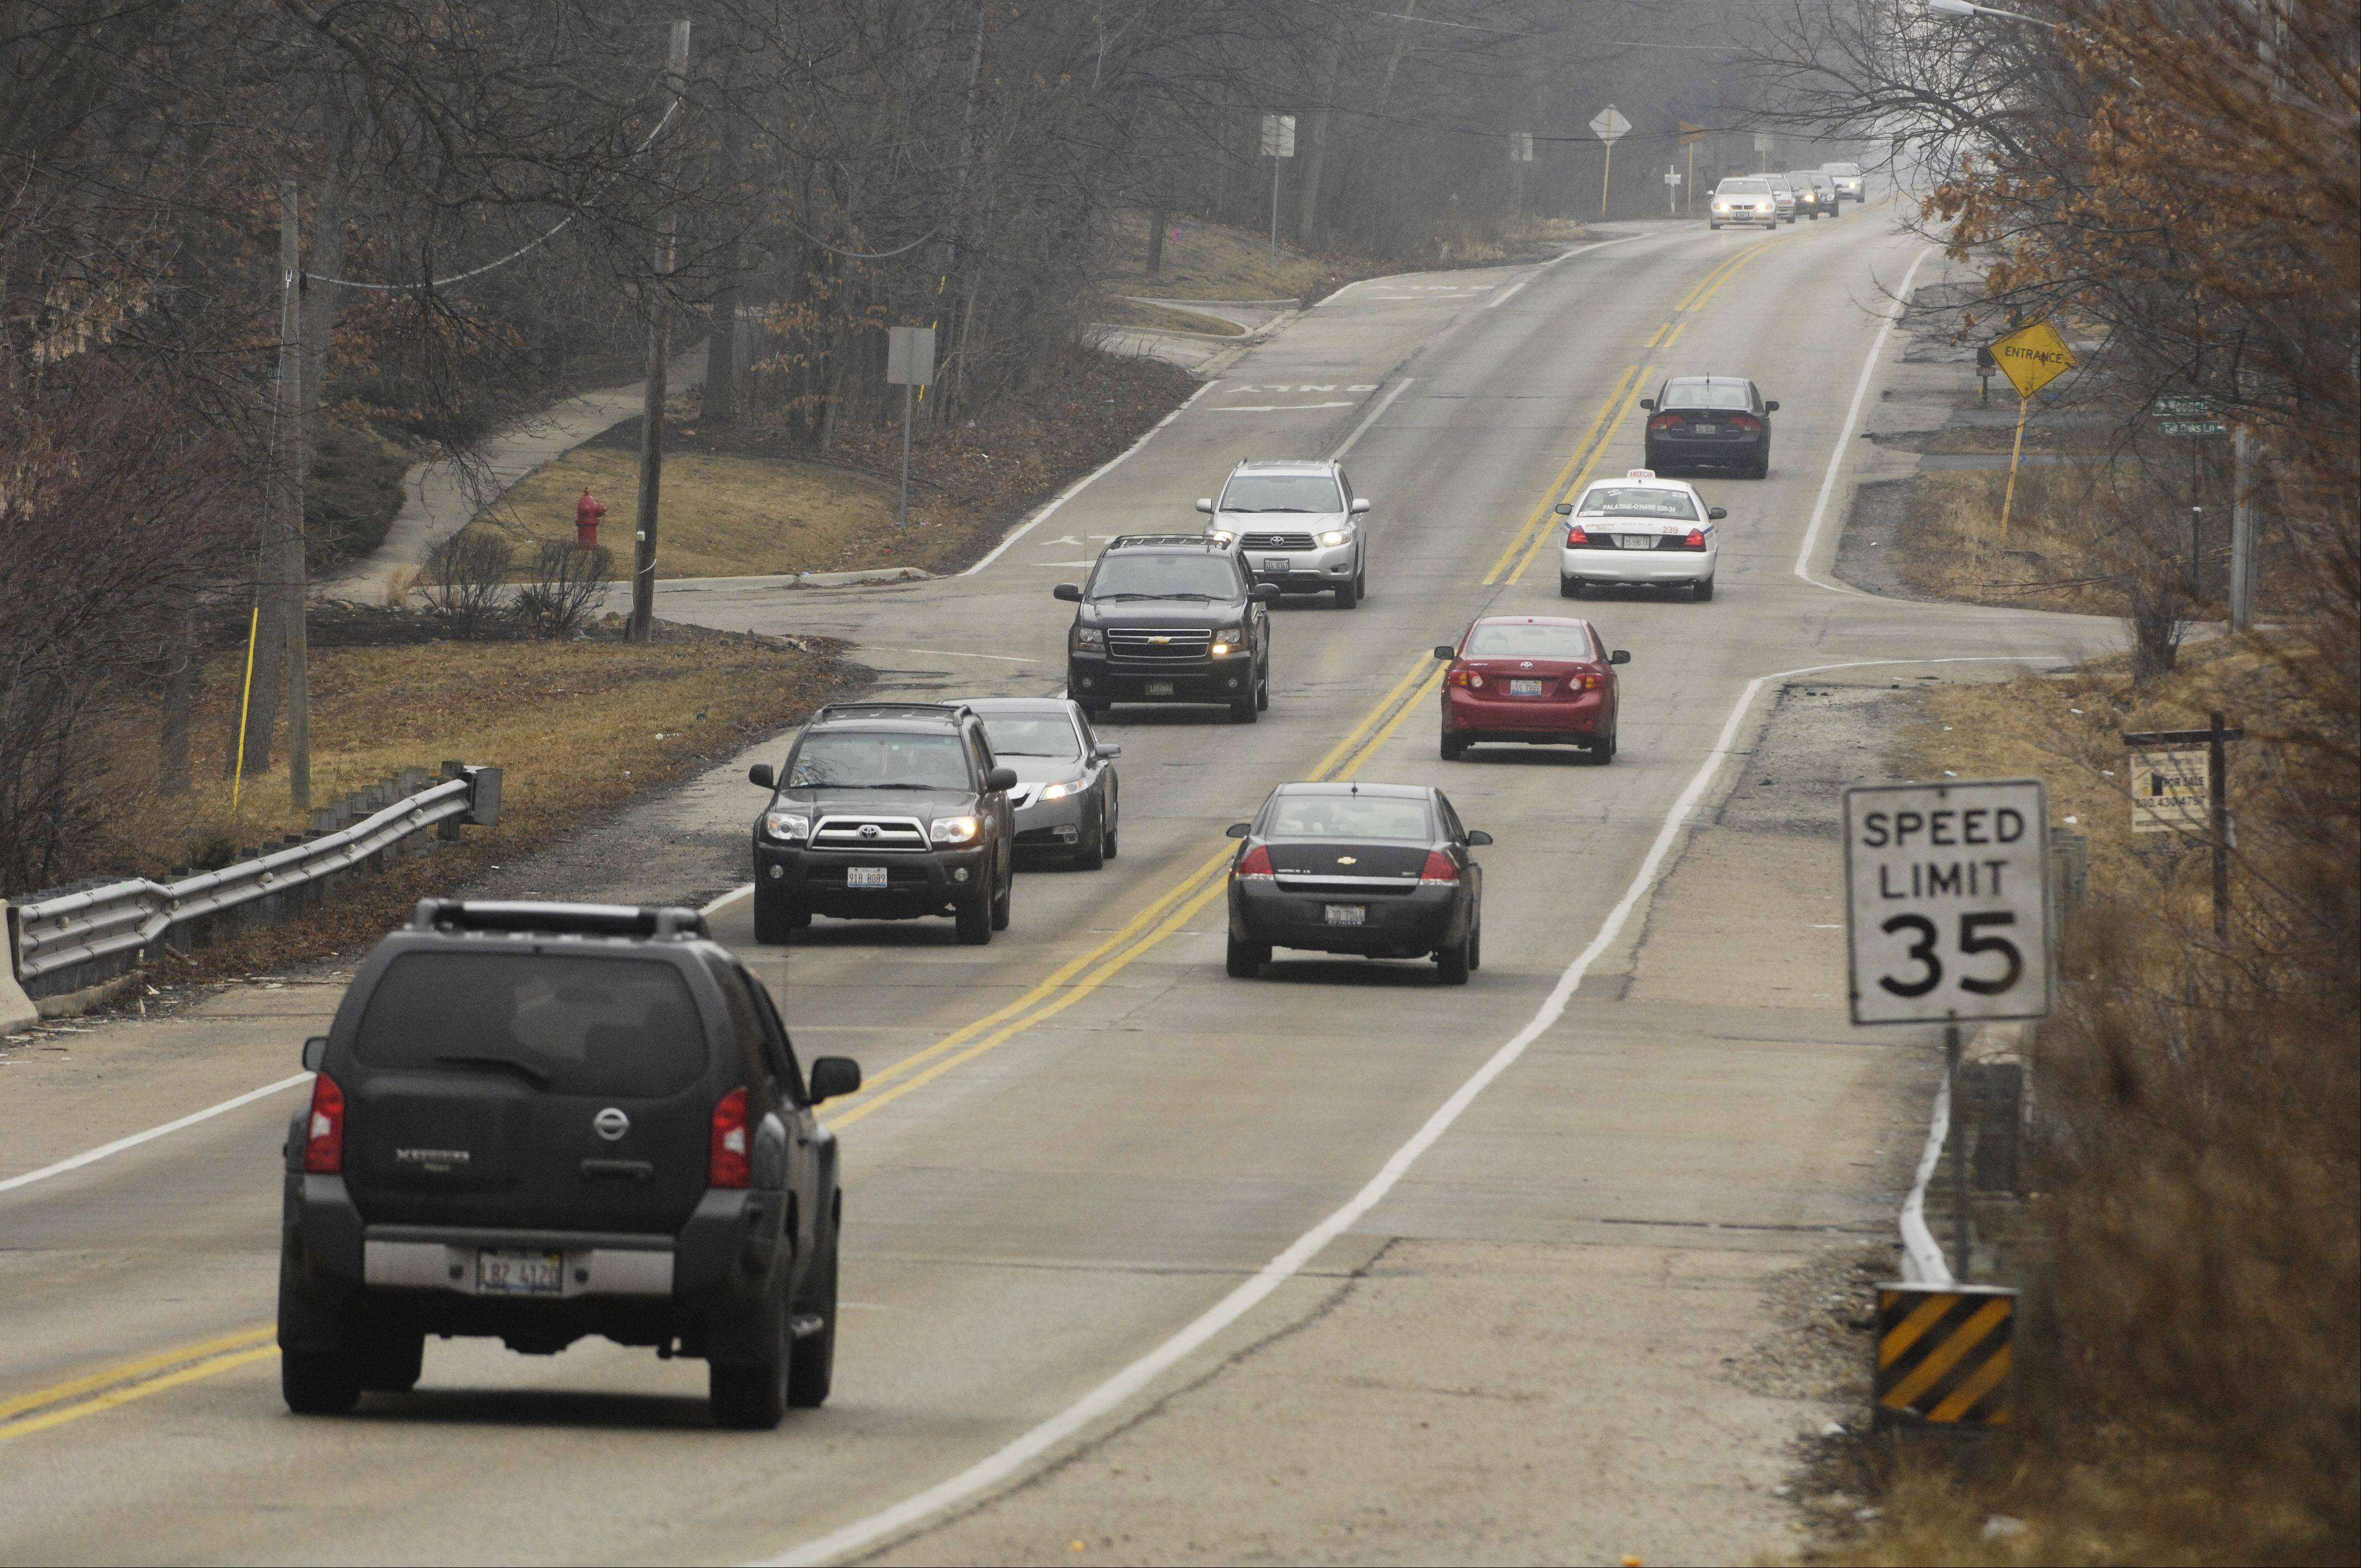 Rolling Meadows officials will resume discussions Tuesday night about a proposal to expand Meacham Road, increasing the number of lanes between Emerson Avenue and Algonquin Road. The plan has been met by strong opposition from residents living near the roadway.